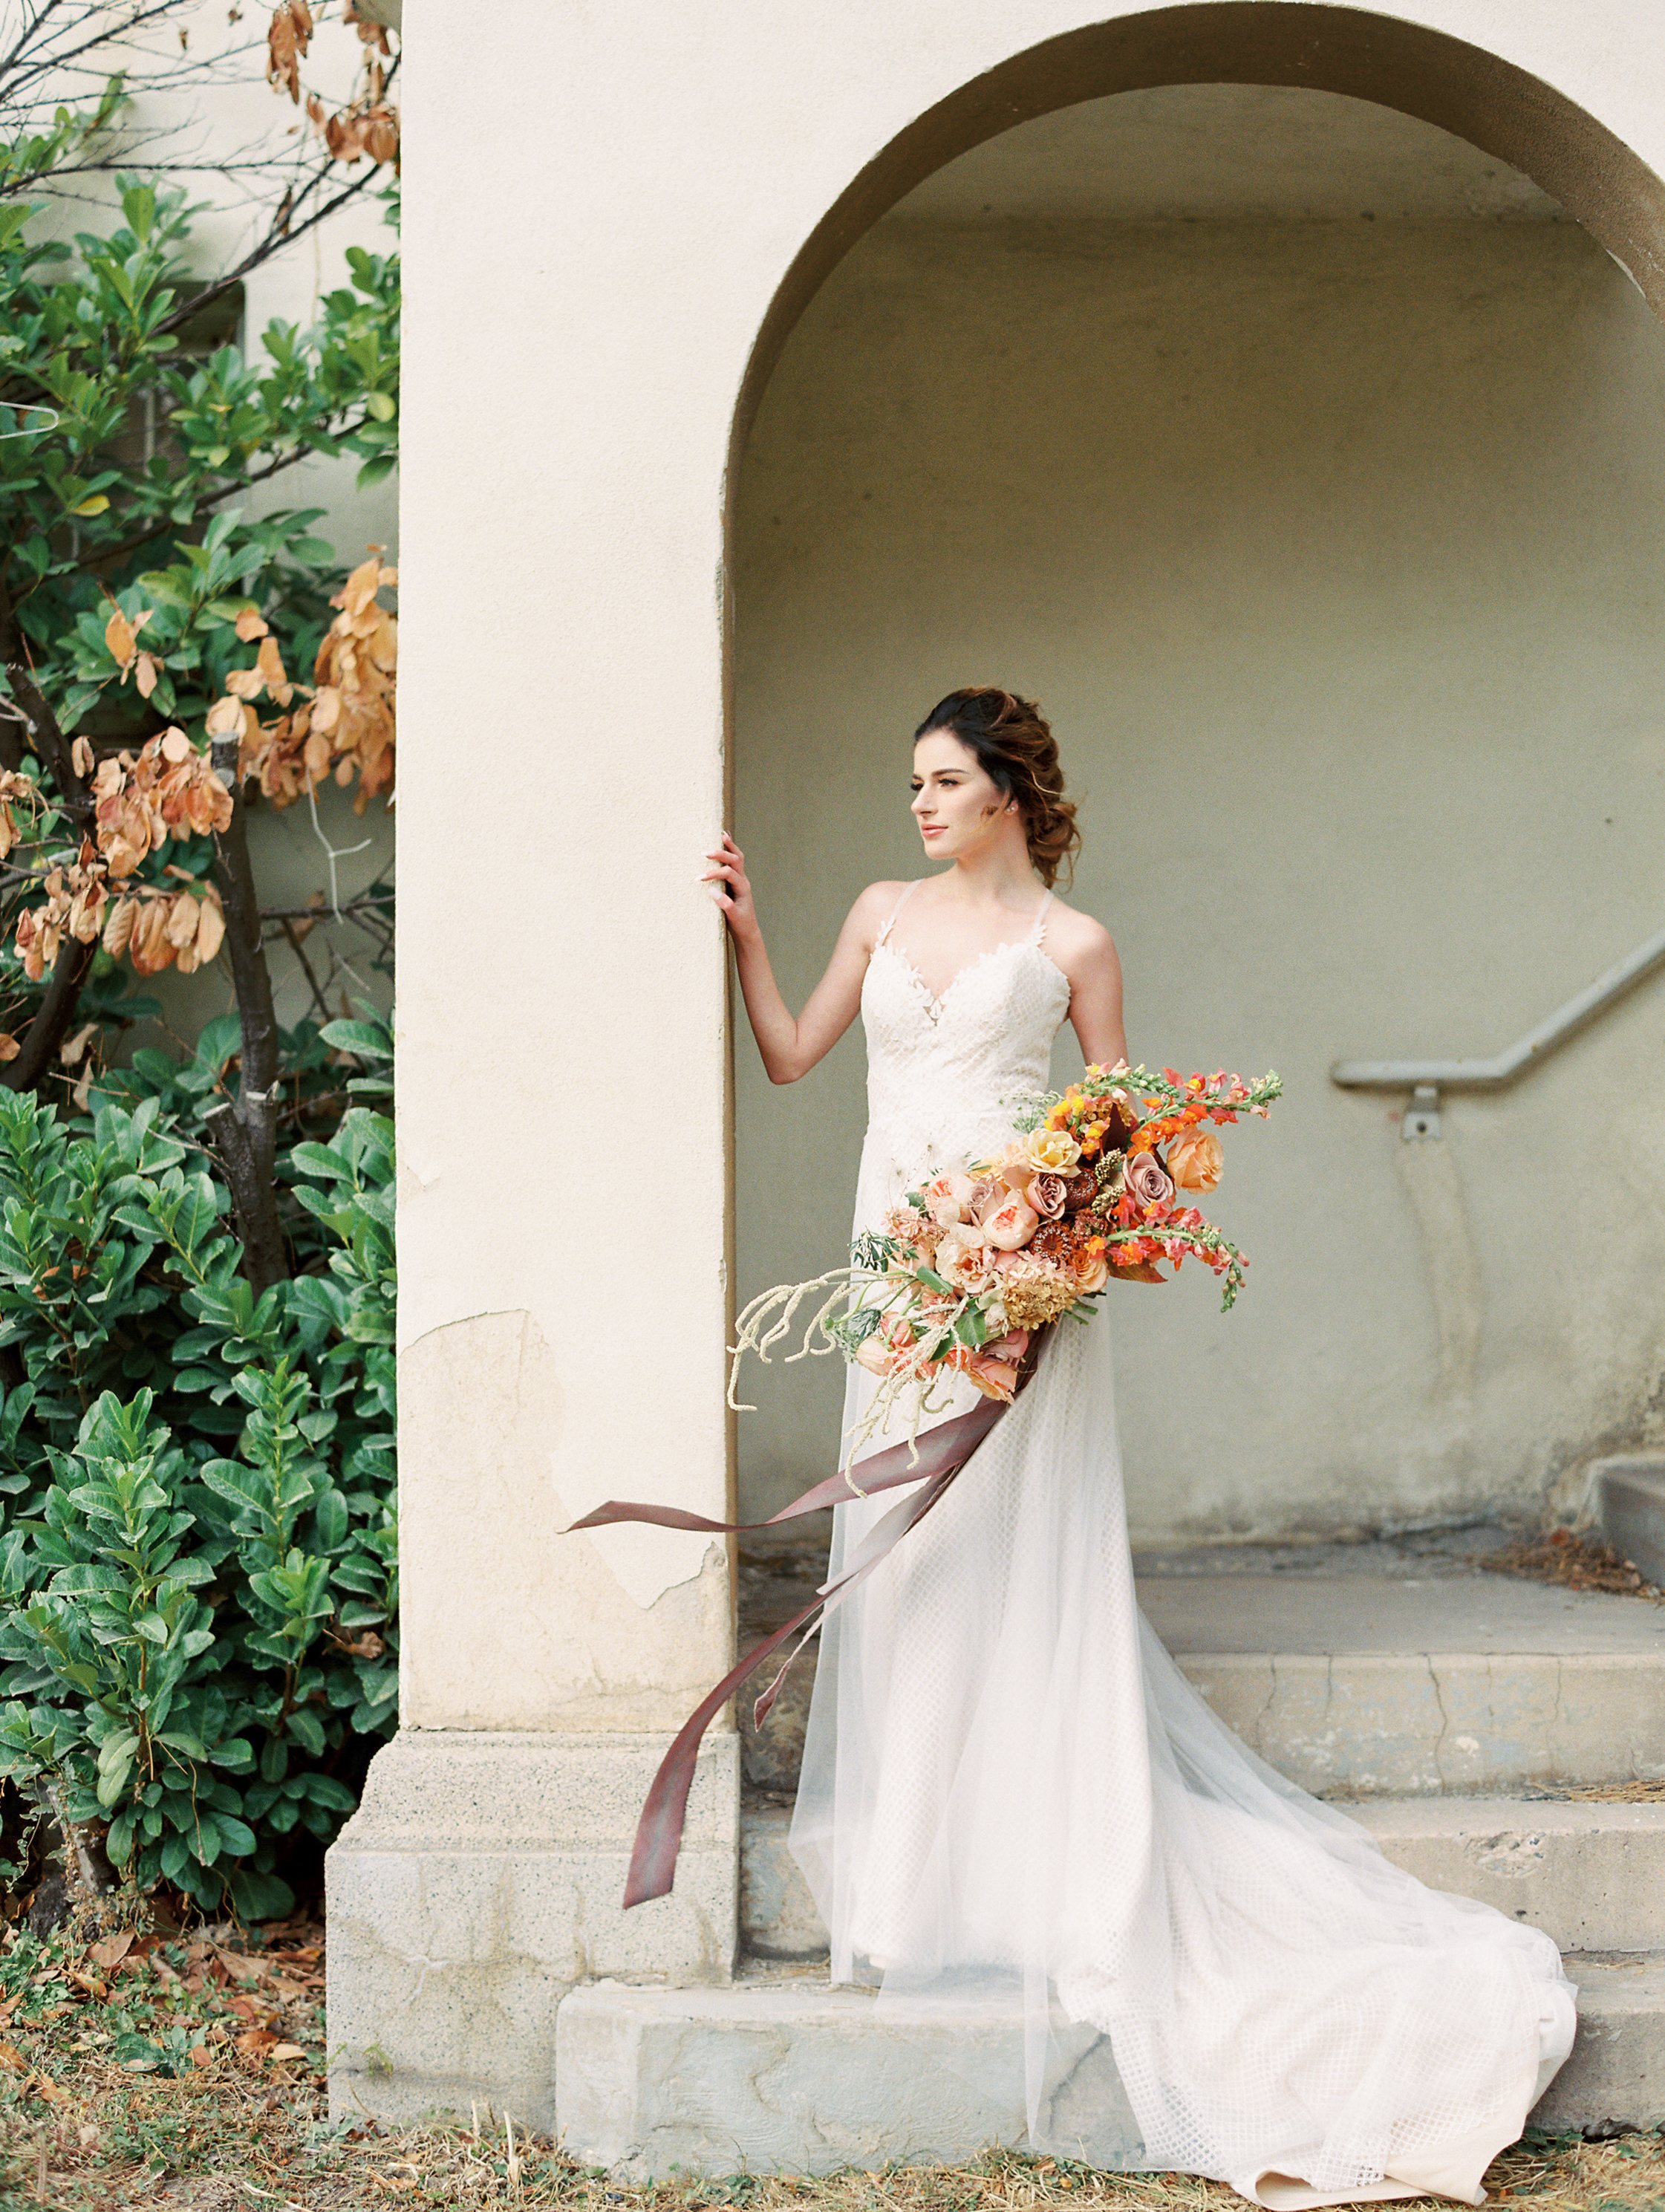 The Potted Pansy + As Ever Photography Utah Wedding